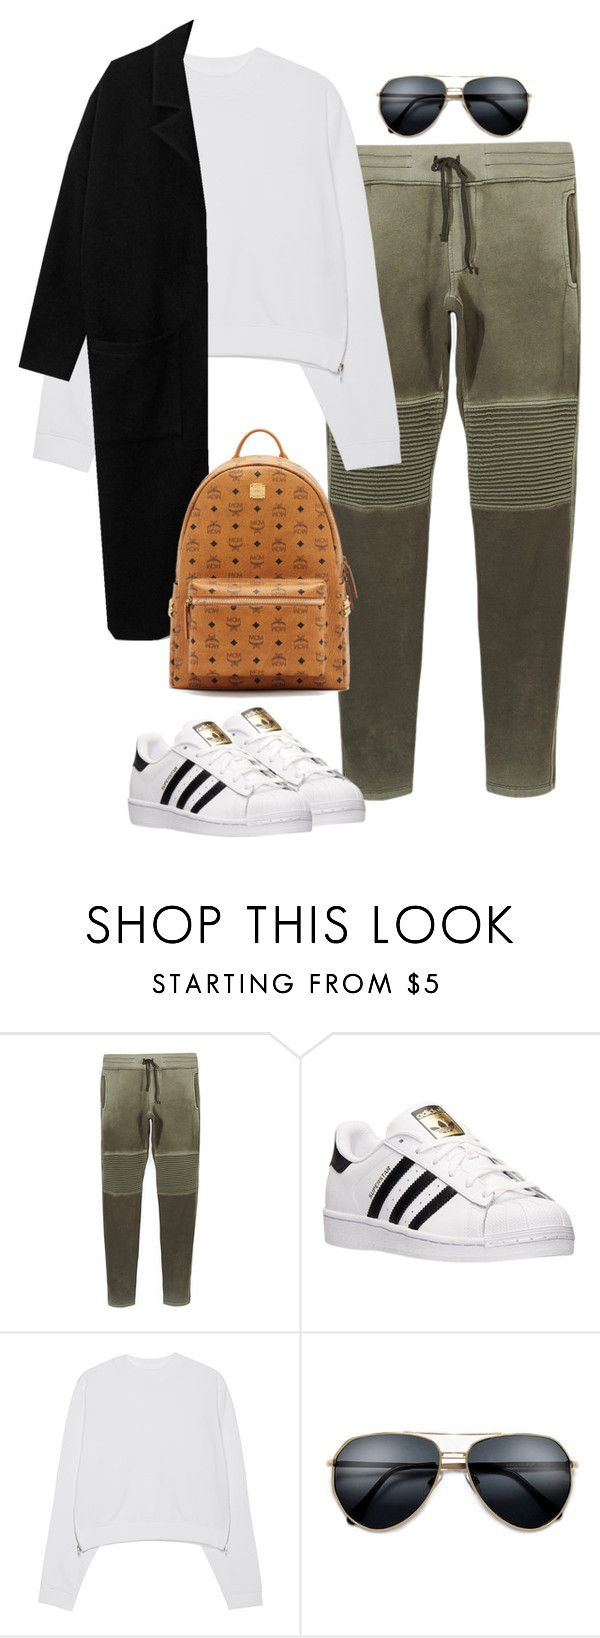 """""""Untitled #451"""" by christyandnef on Polyvore featuring Cotton Citizen, adidas, Acne Studios, MCM, women's clothing, women, female, woman, misses and juniors"""